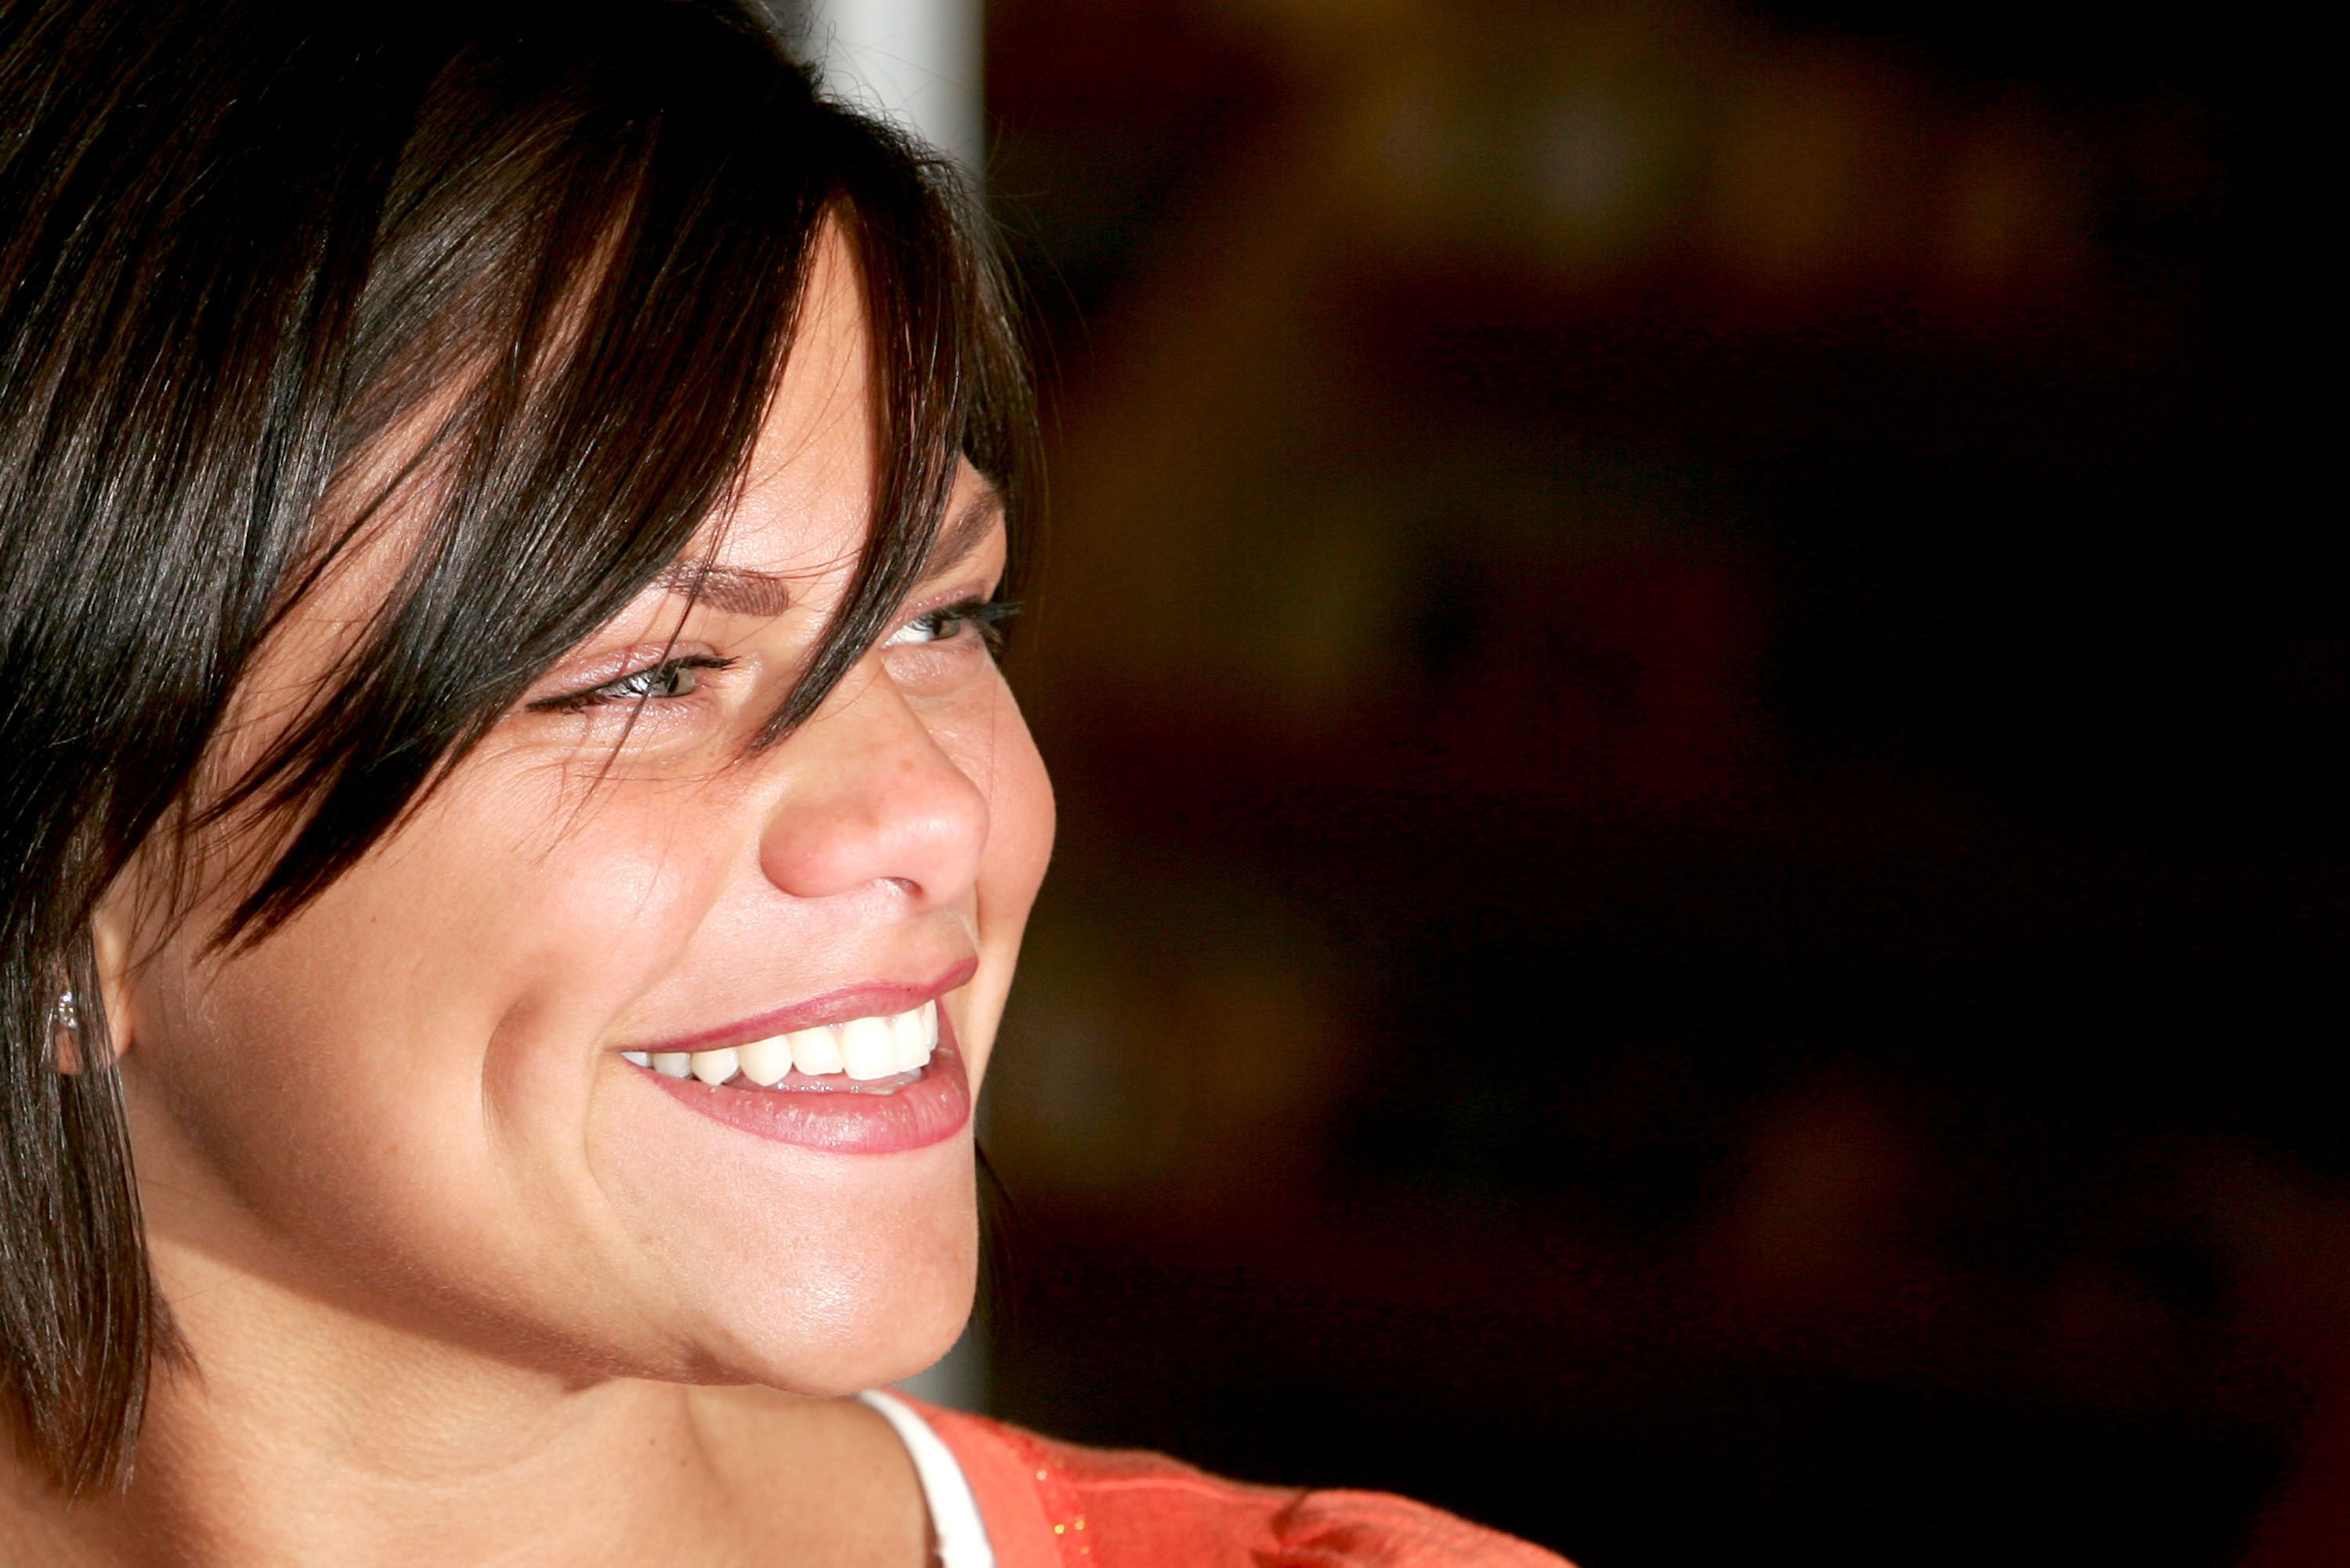 Charity issues warning ahead of final Jade Goody documentary episode